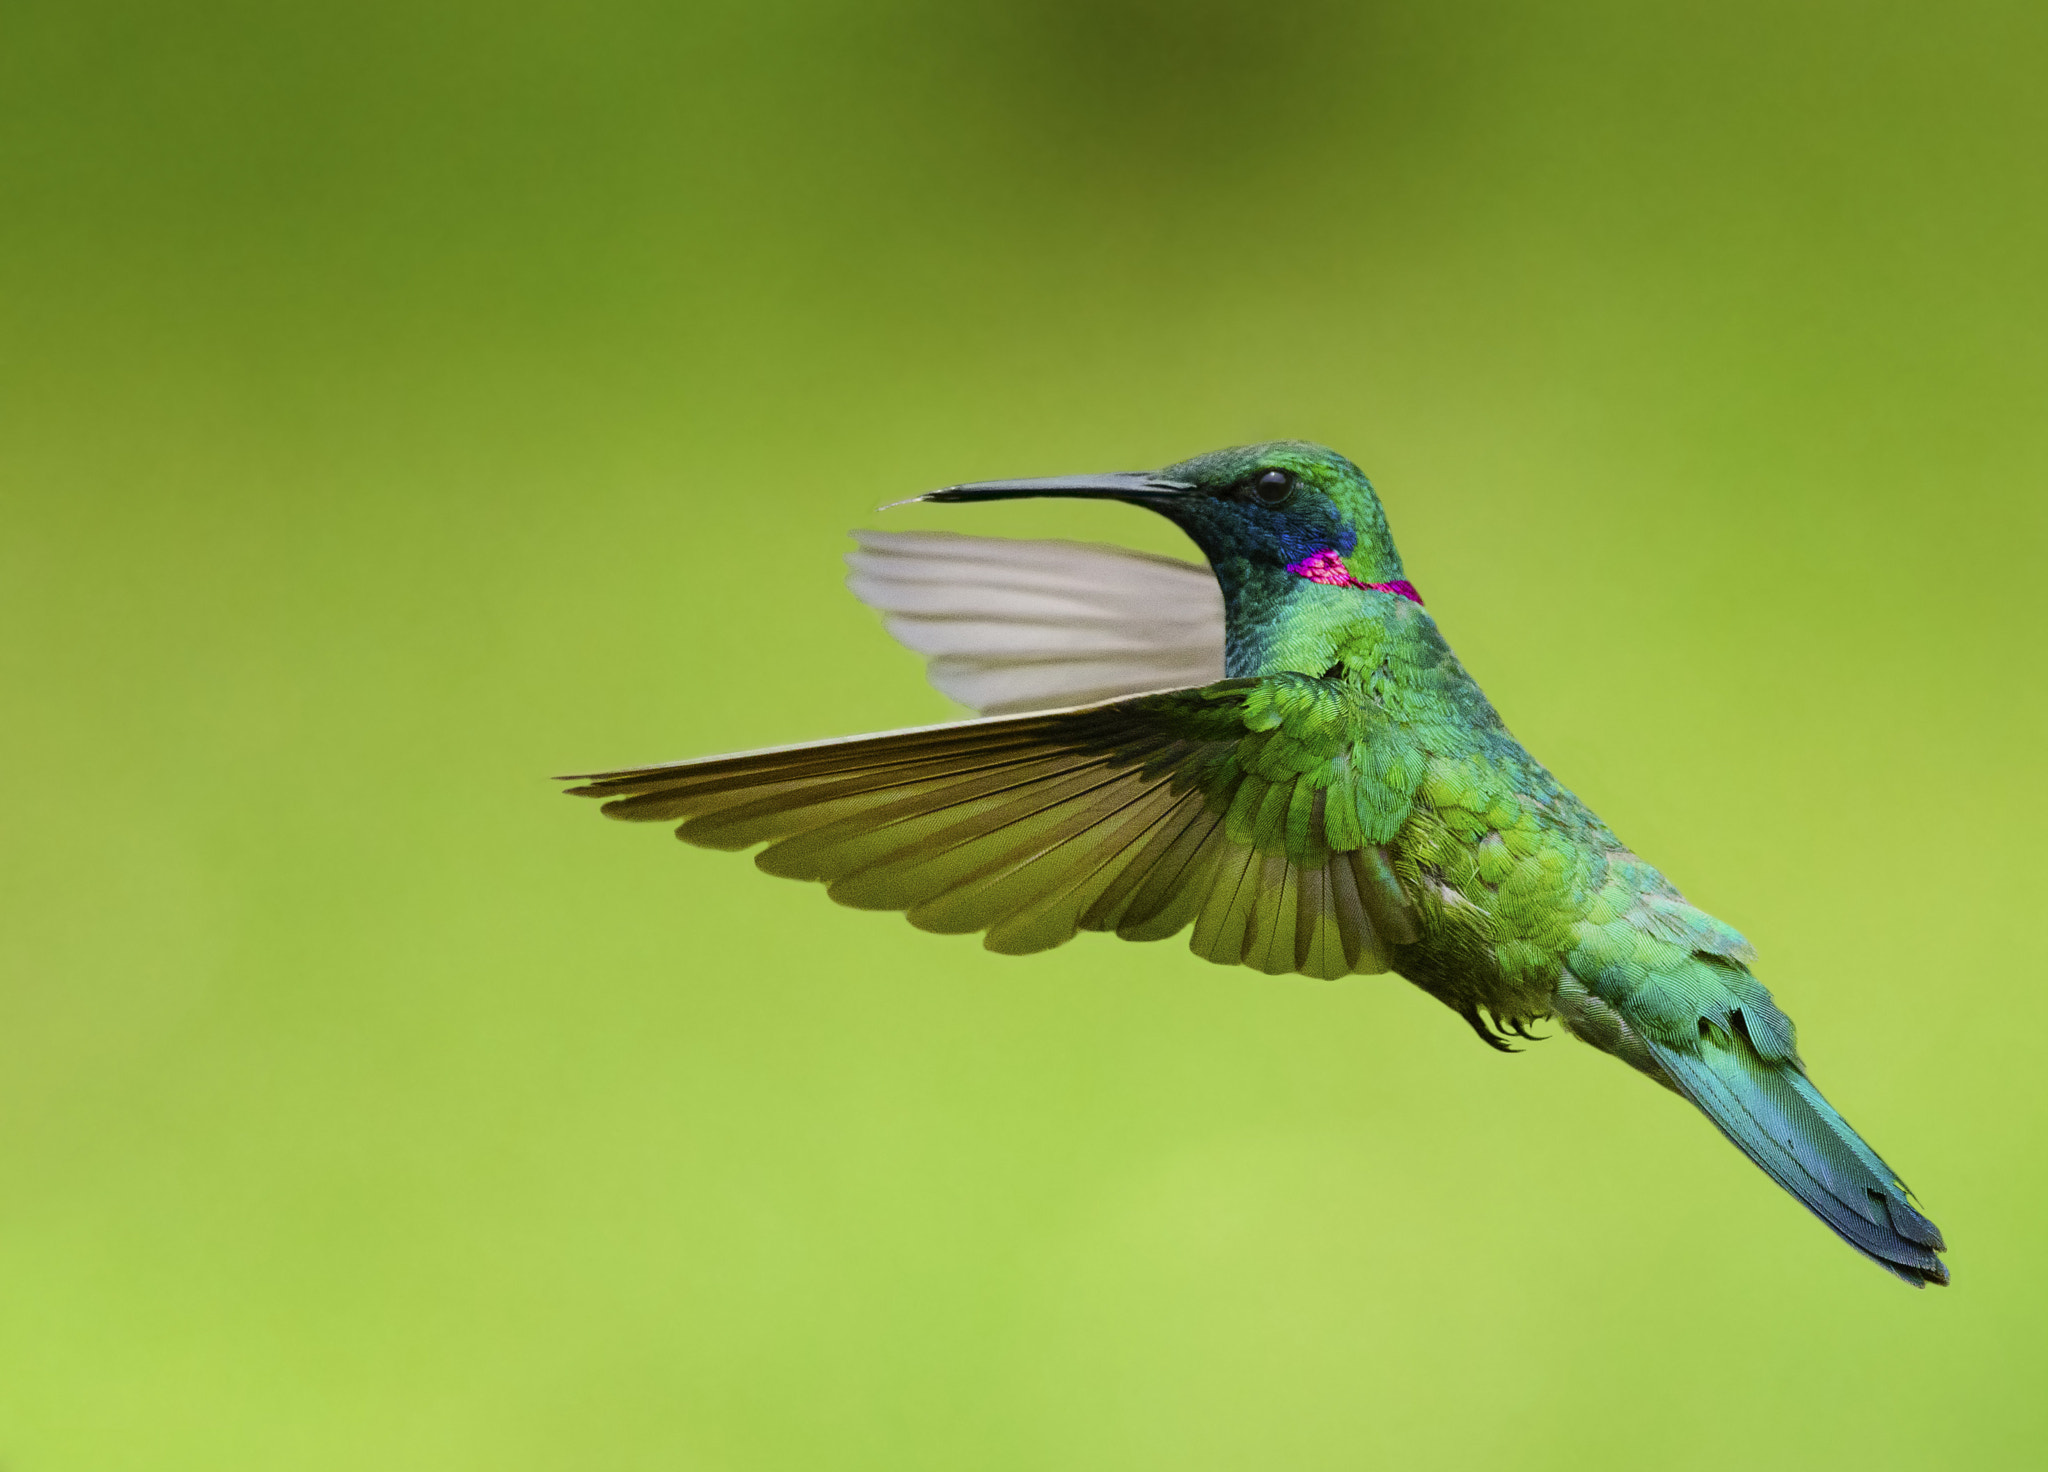 Photograph White-vented Violetear by jarbas mattos on 500px